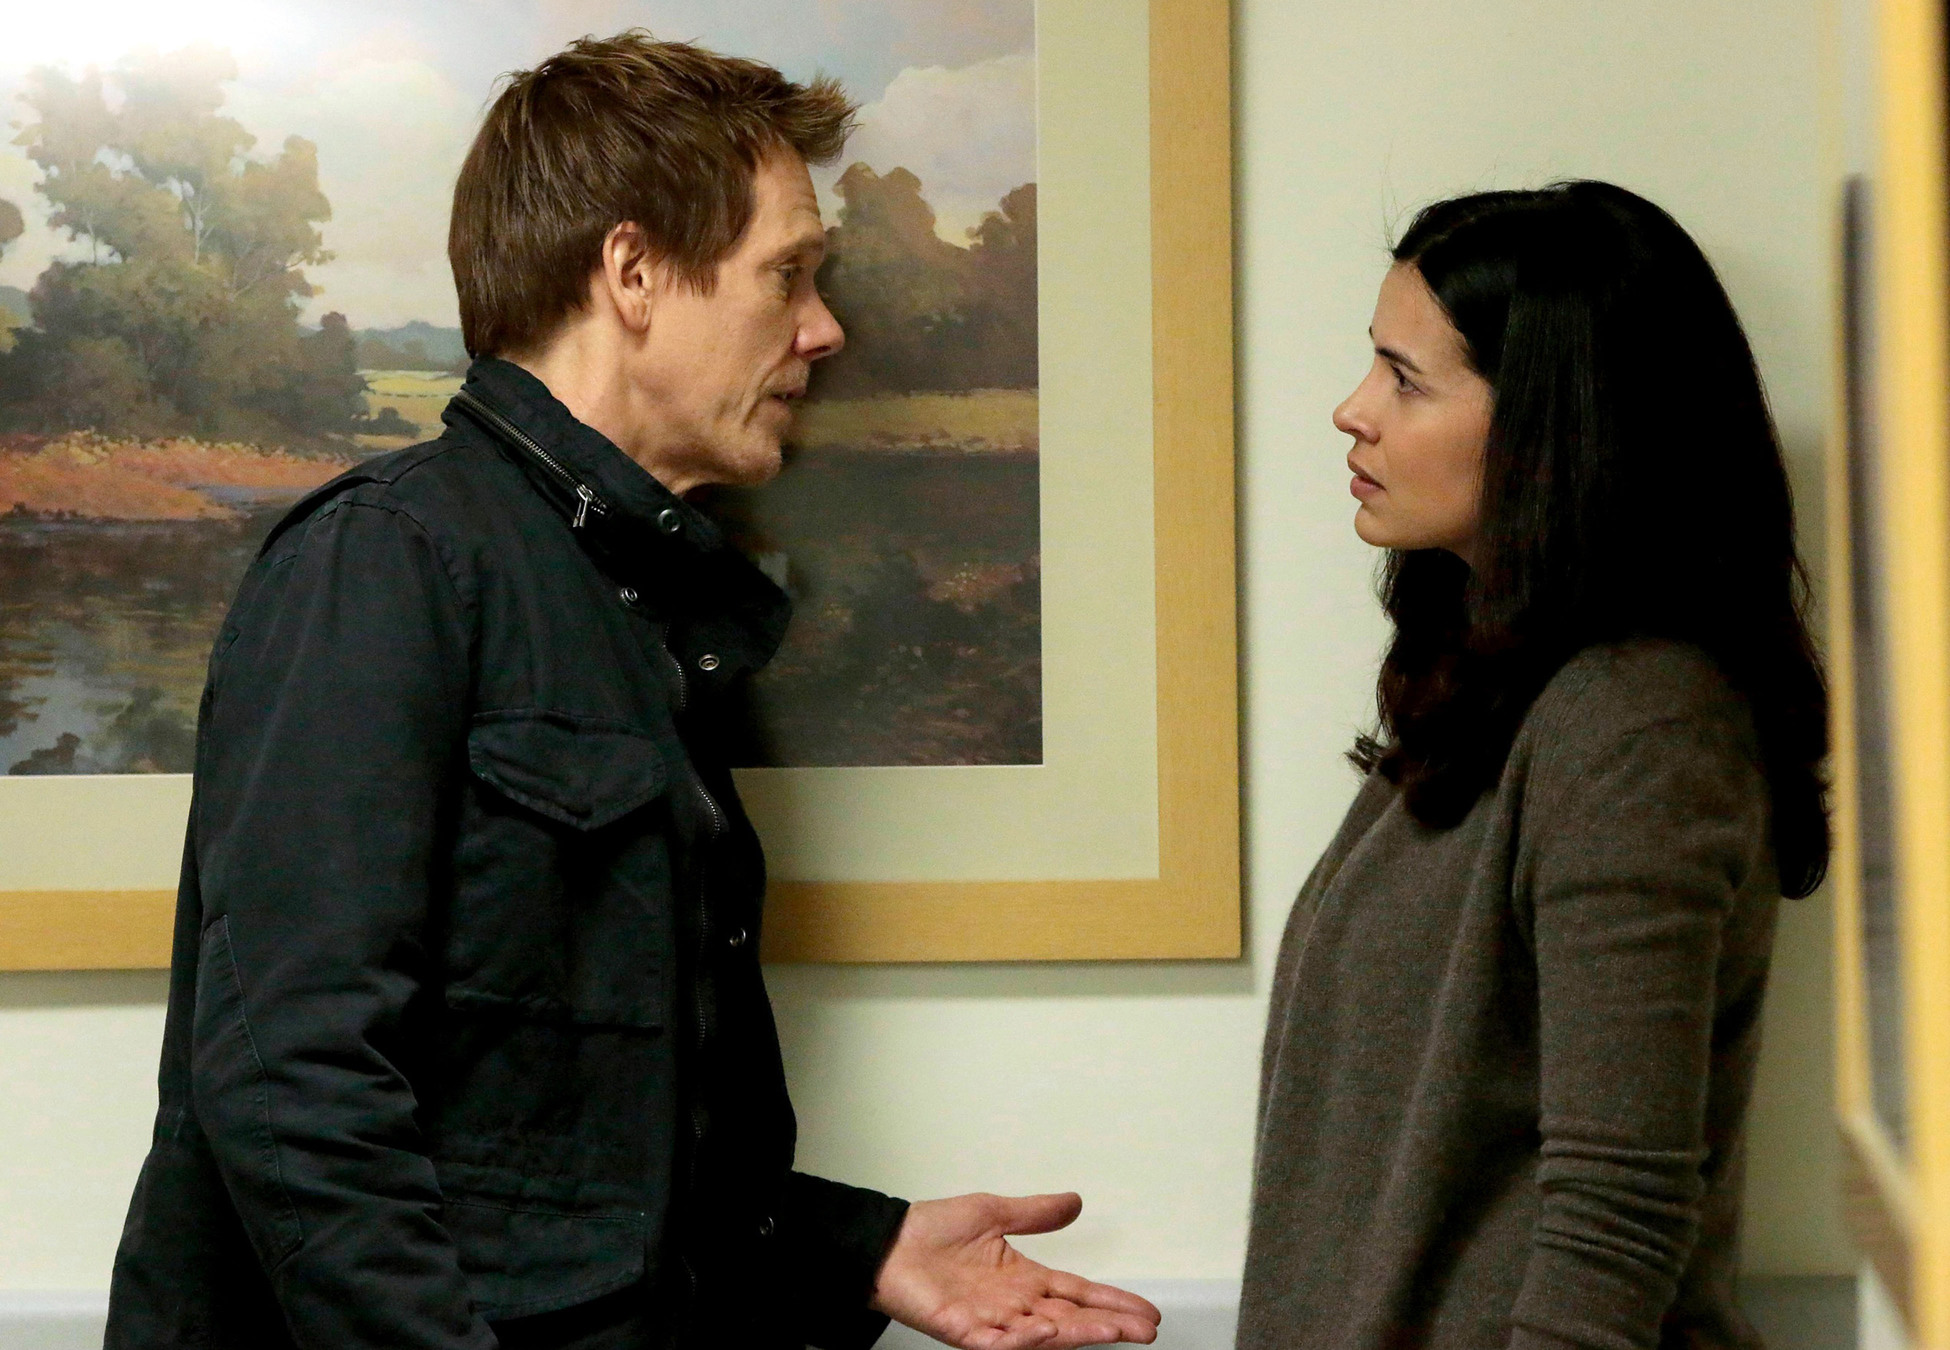 Kevin Bacon and Zuleikha Robinson in The Following (2013)